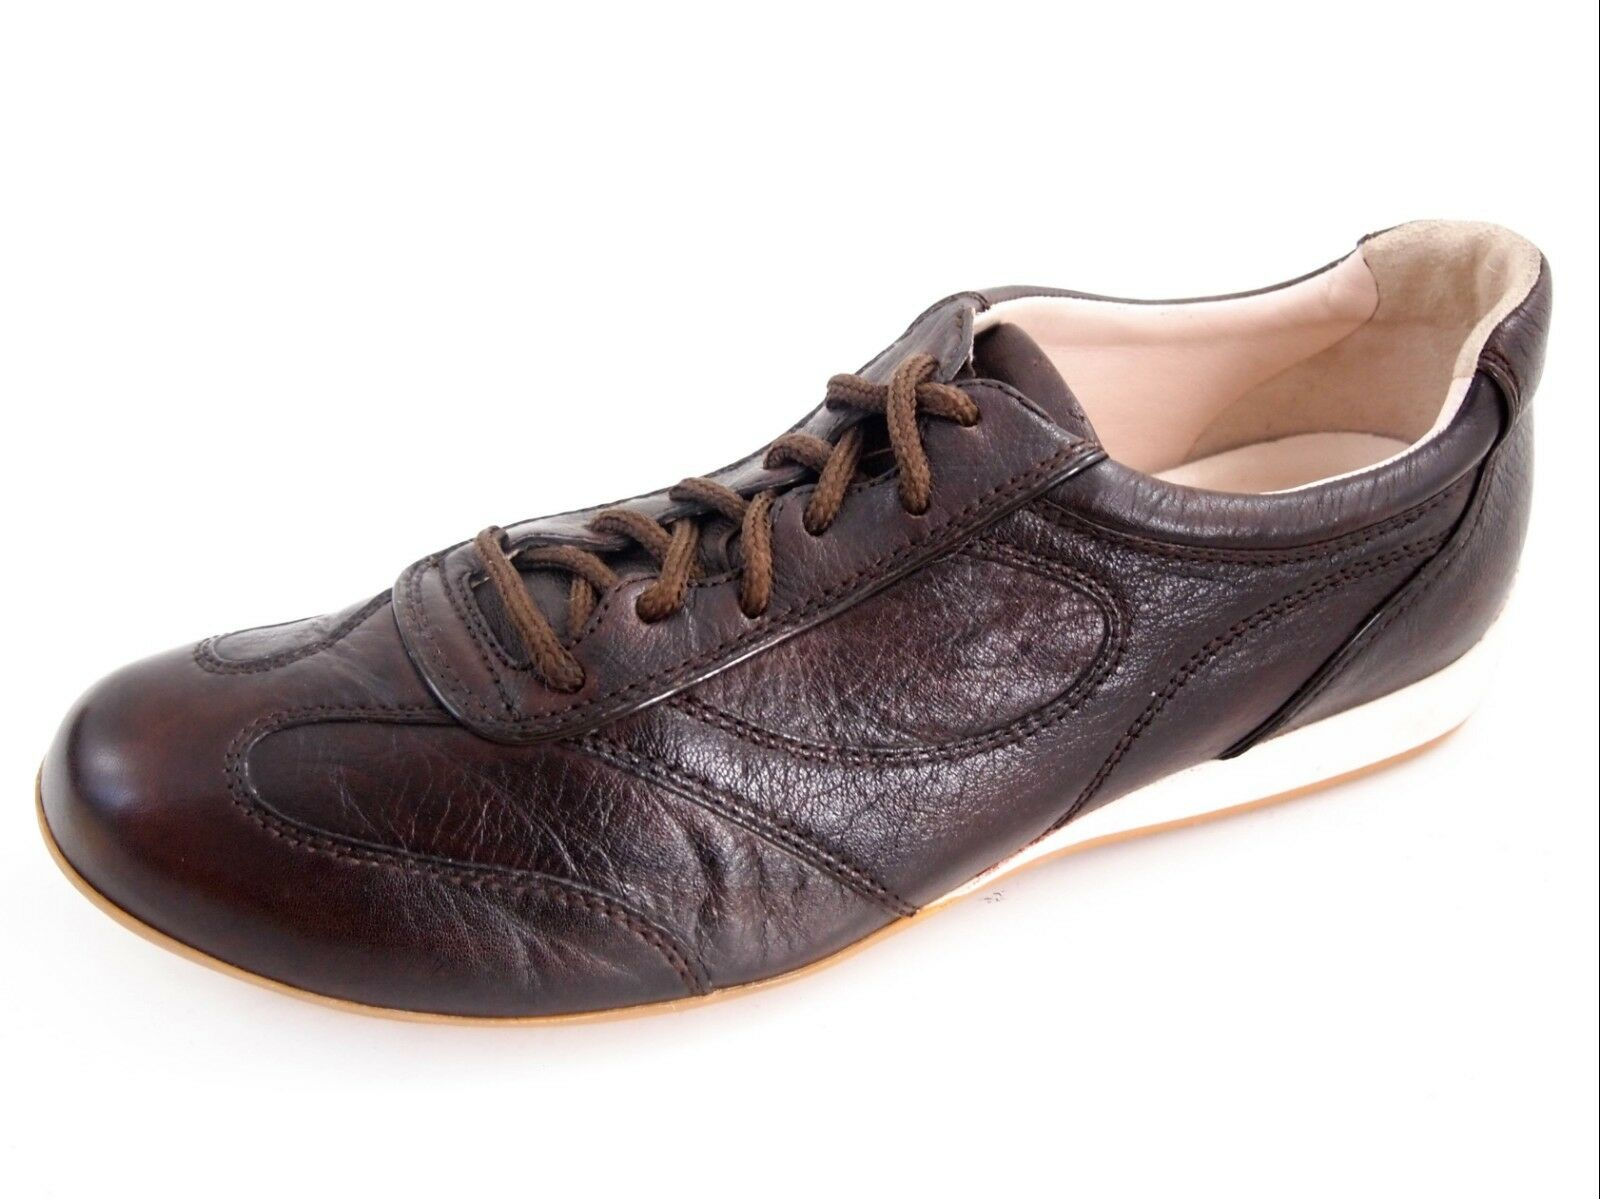 Bally Zapatillas, Cuero Marrón, Woman's Talla Talla Talla US 11 EU 41.5  580  minorista de fitness